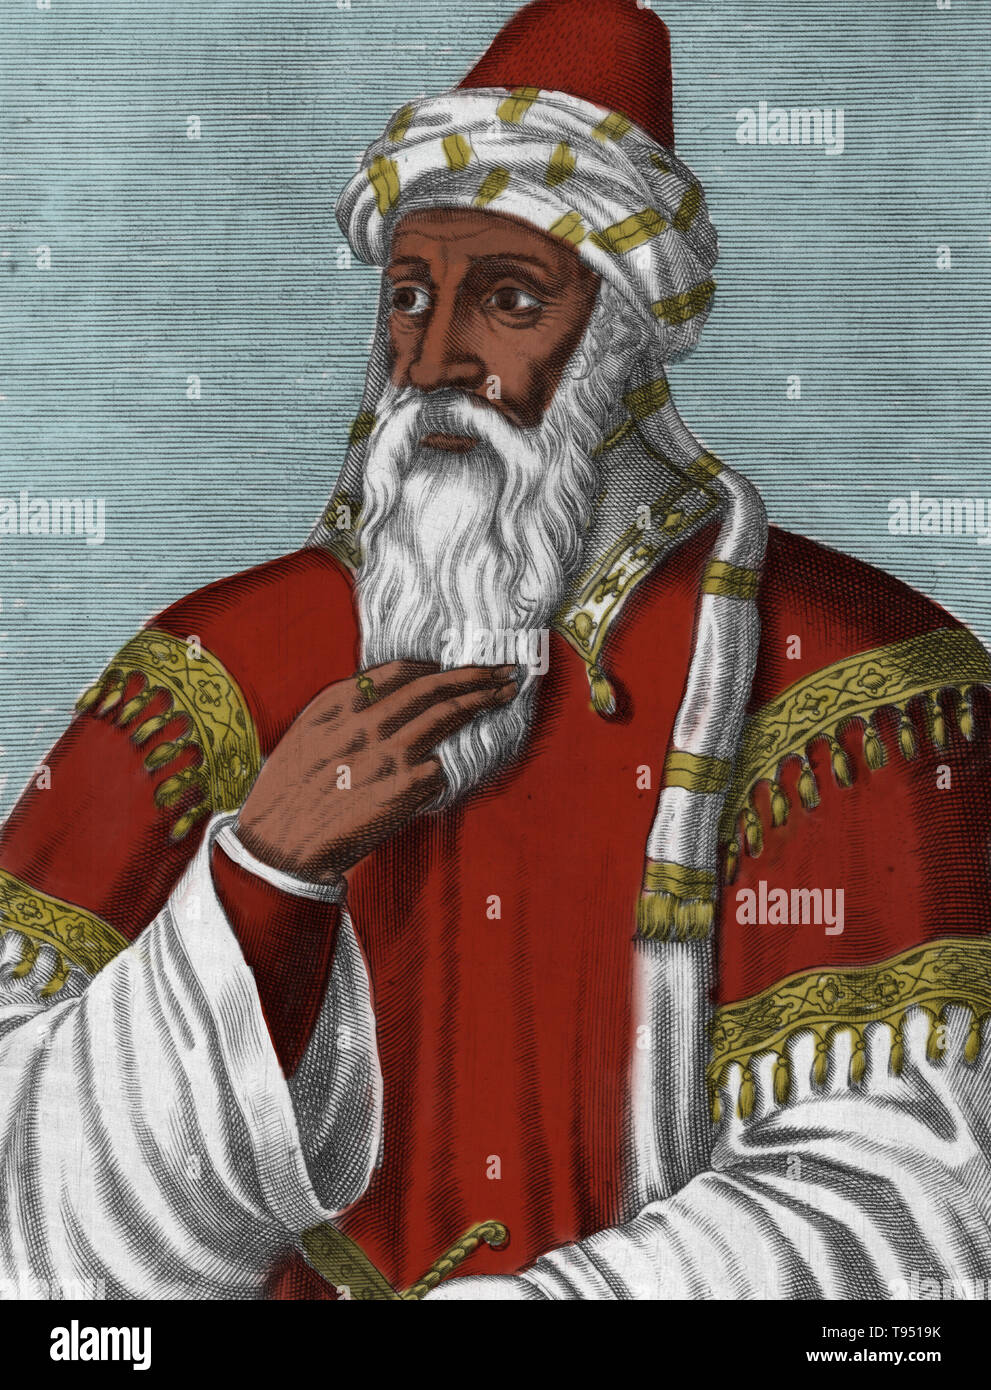 Salah ad-Din Yusuf ibn Ayyub (1138-1193) was a Kurdish Muslim, who became the first Sultan of Egypt and Syria, and founded the Ayyubid dynasty. At the height of his power, his sultanate included Egypt, Syria, Mesopotamia, Hejaz, Yemen, and parts of North Africa. Under his leadership, his forces defeated the Crusaders at the Battle of Hattin, leading the way to his recapturing of Palestine, which had been seized from the Fatimid Egyptians by the Crusaders 88 years earlier. His noble and chivalrous behavior was noted by Christian chroniclers and despite being the nemesis of the Crusaders, he won - Stock Image